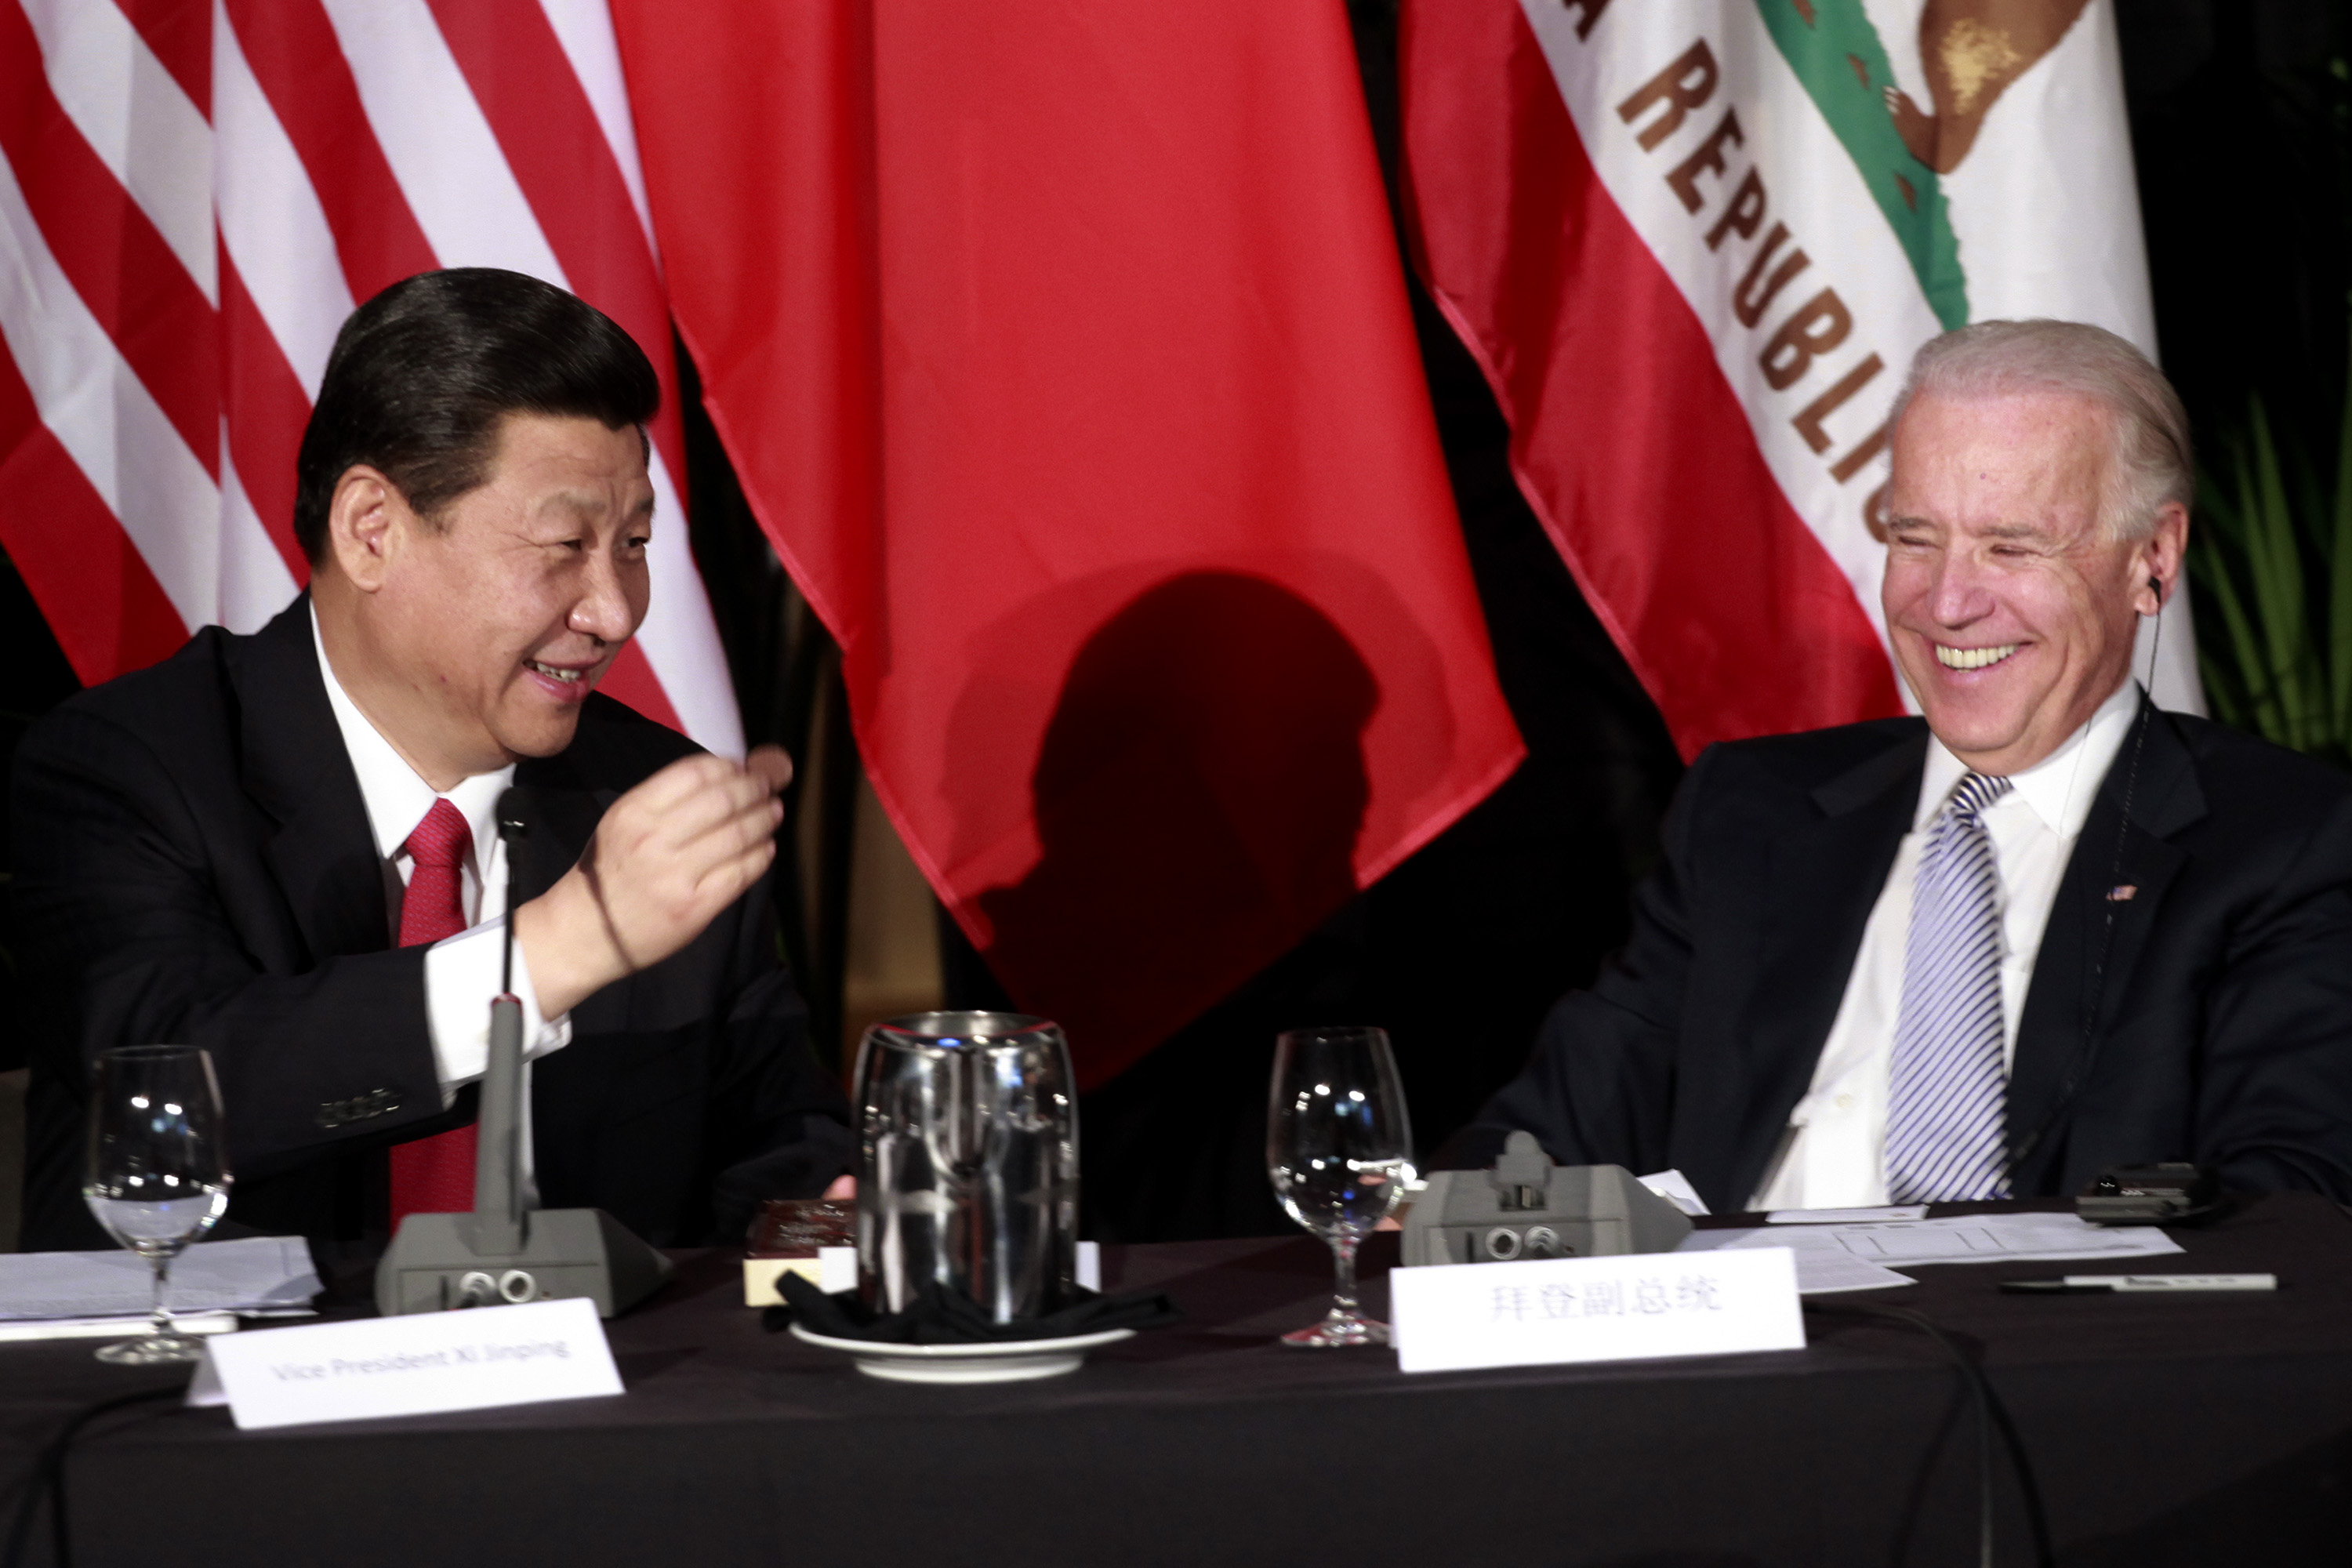 Seated at an event in 2012 when both were vice presidents, Chinese President Xi Jinping showed President Joe Biden a chocolate-covered macadamia nut while both laughed.